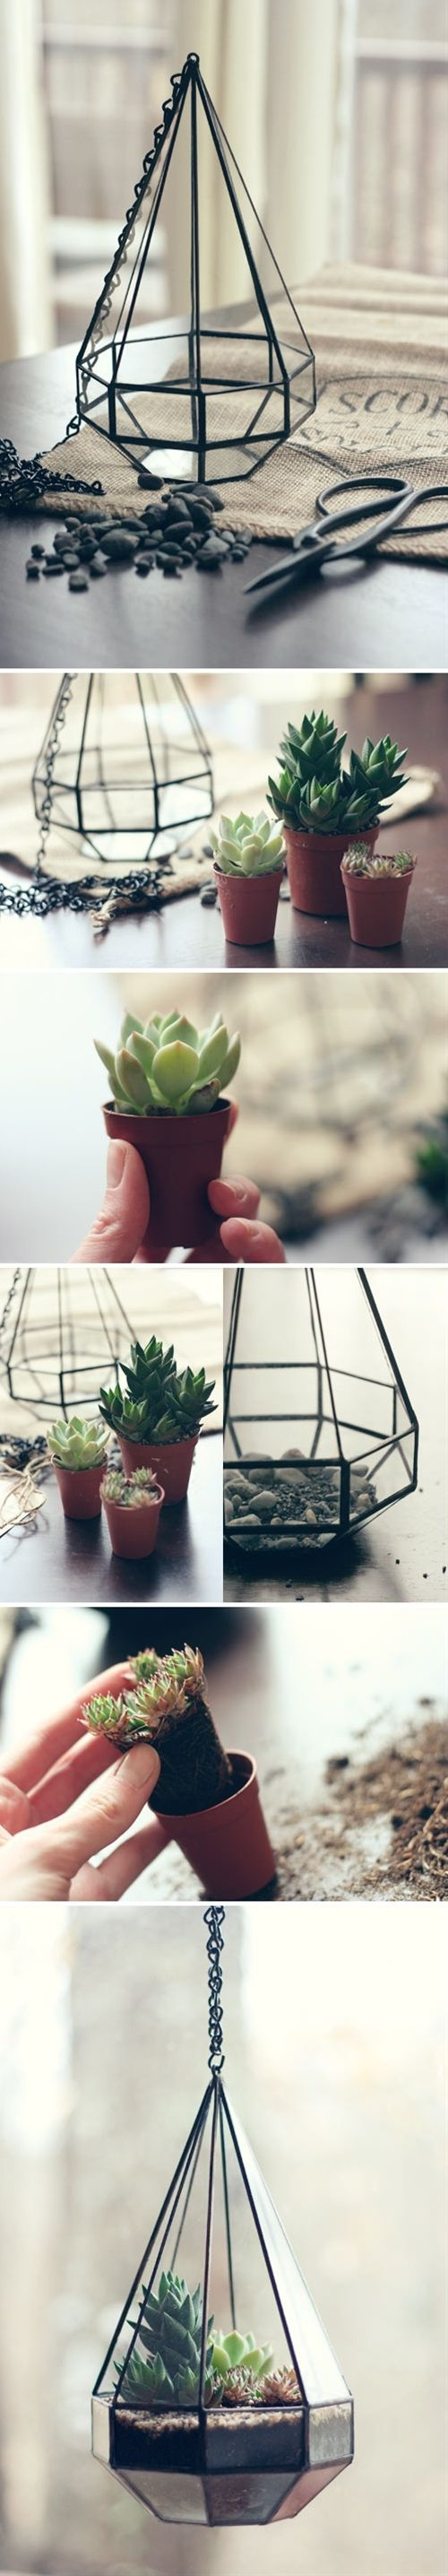 best plants images on pinterest gardening succulents and green